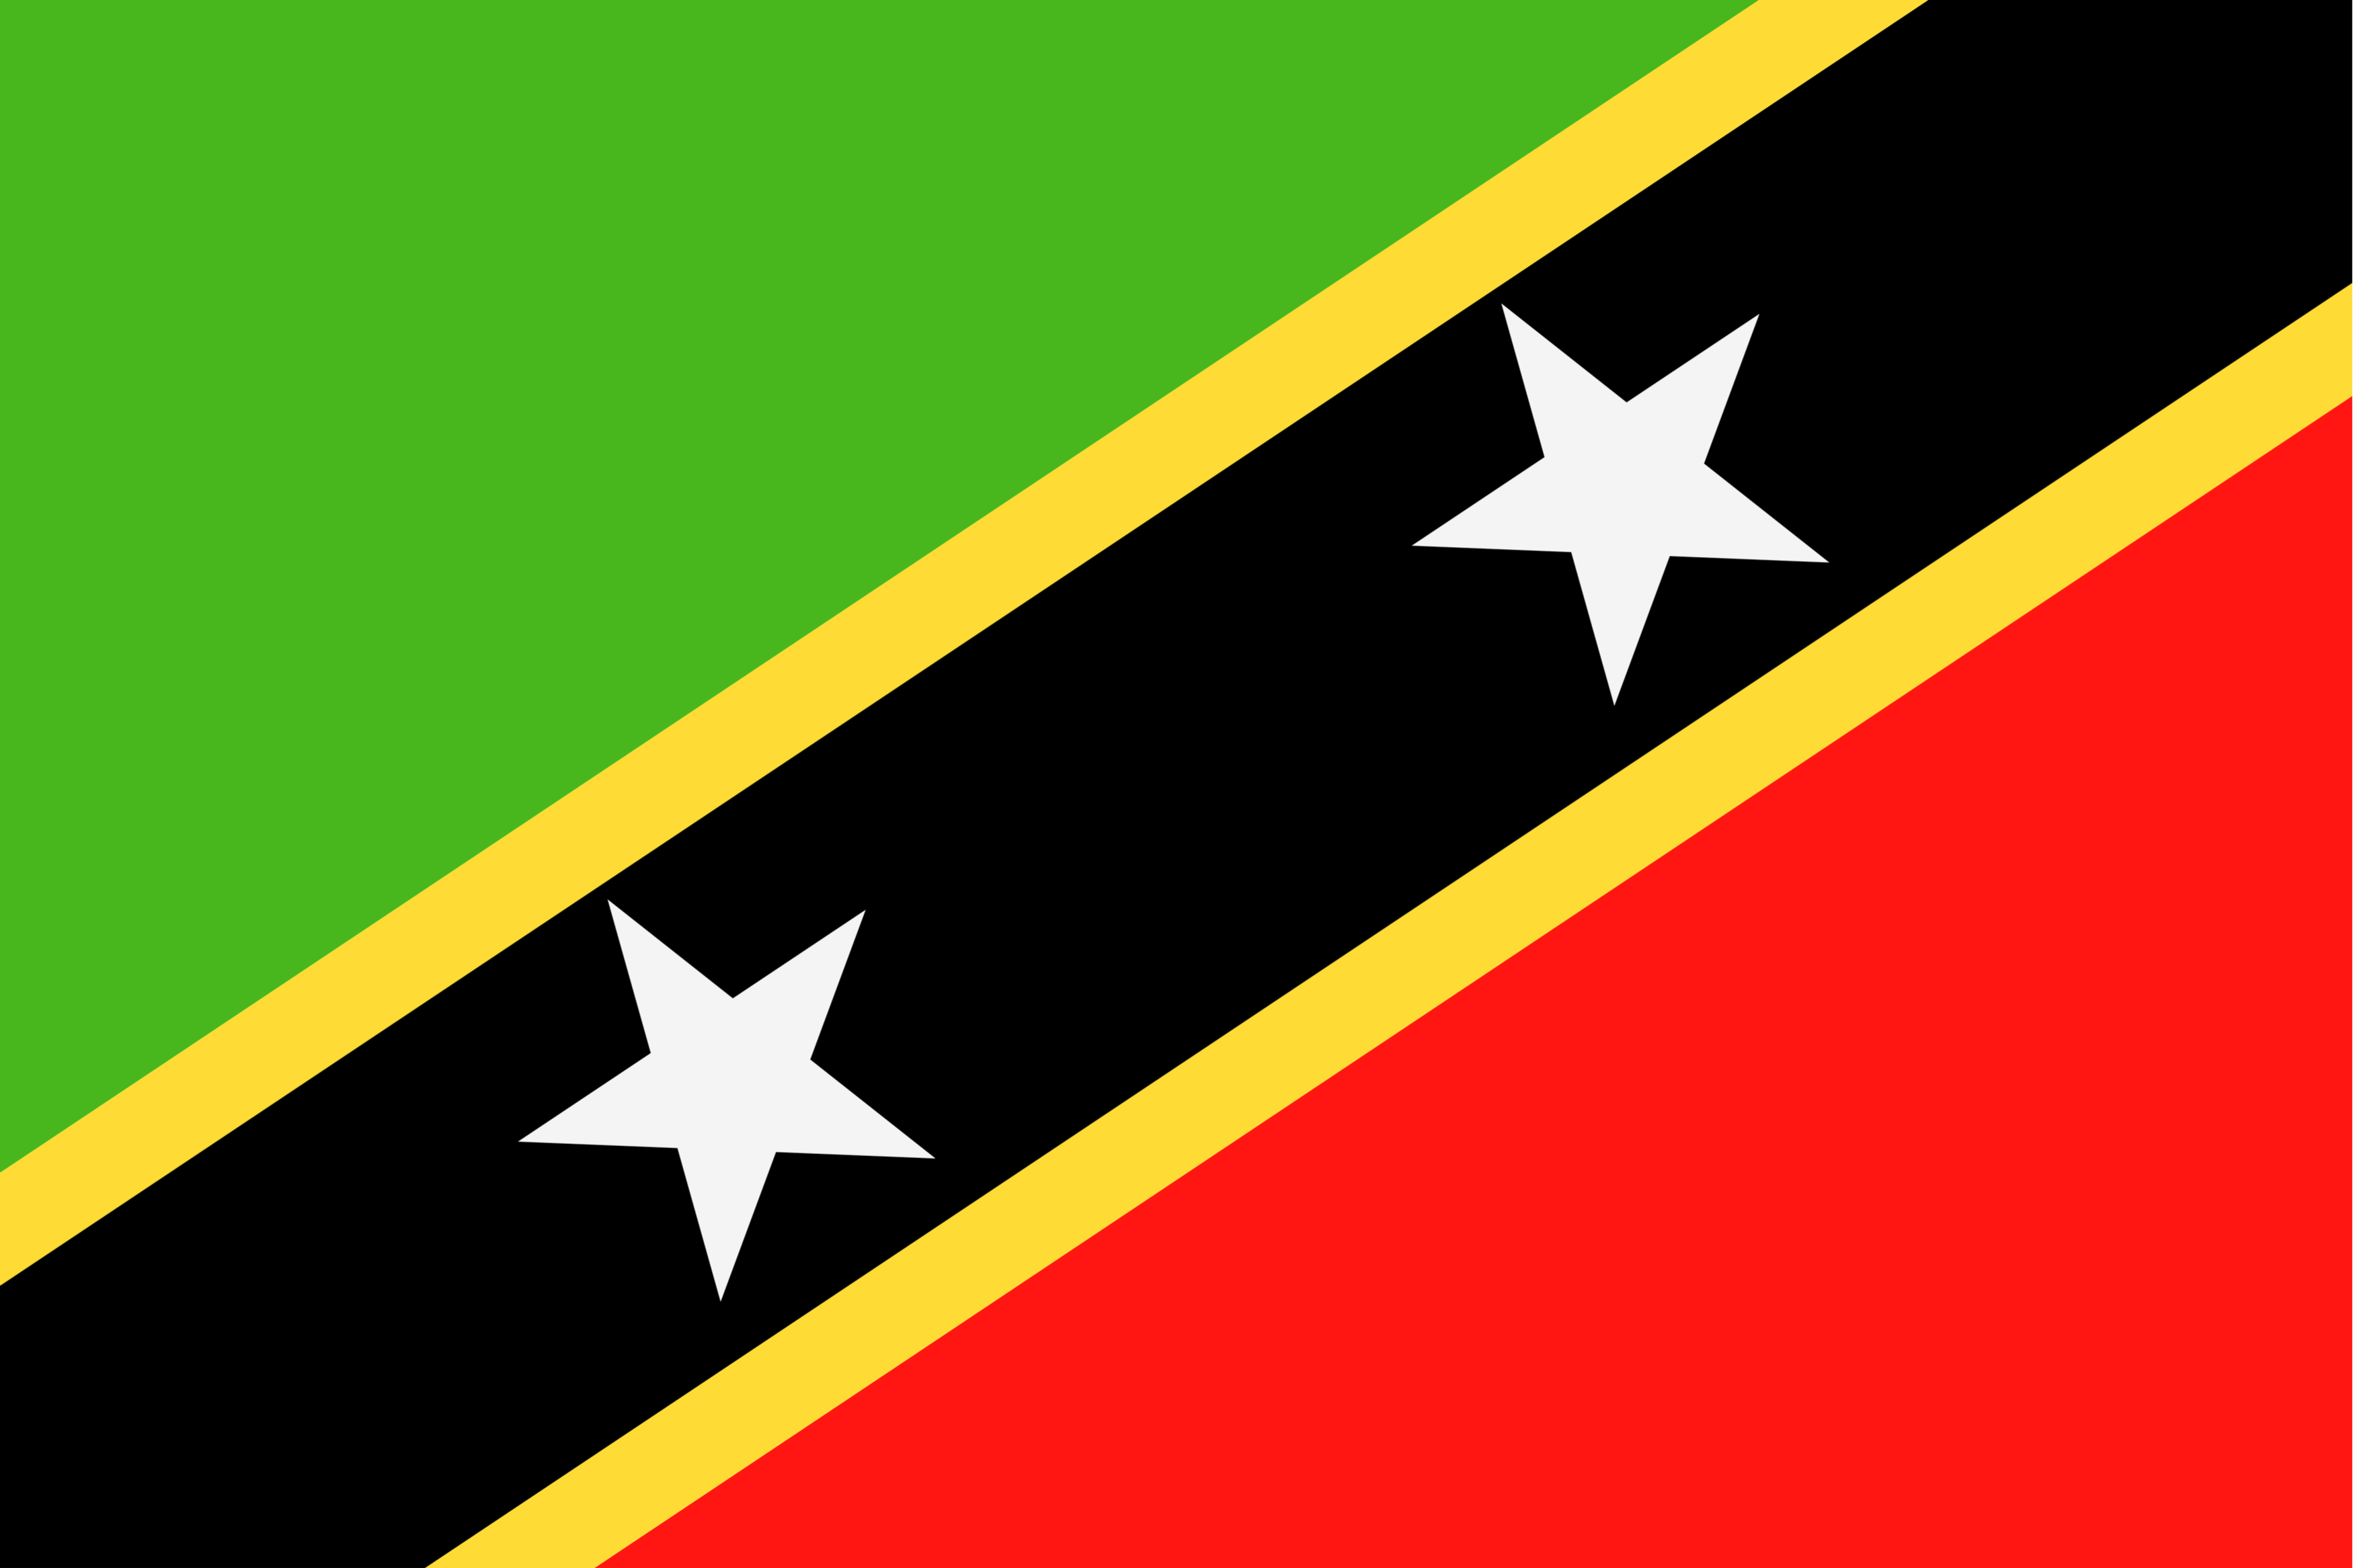 The two stars of the flag symbolize the two islands of Saint Christopher and Nevis.